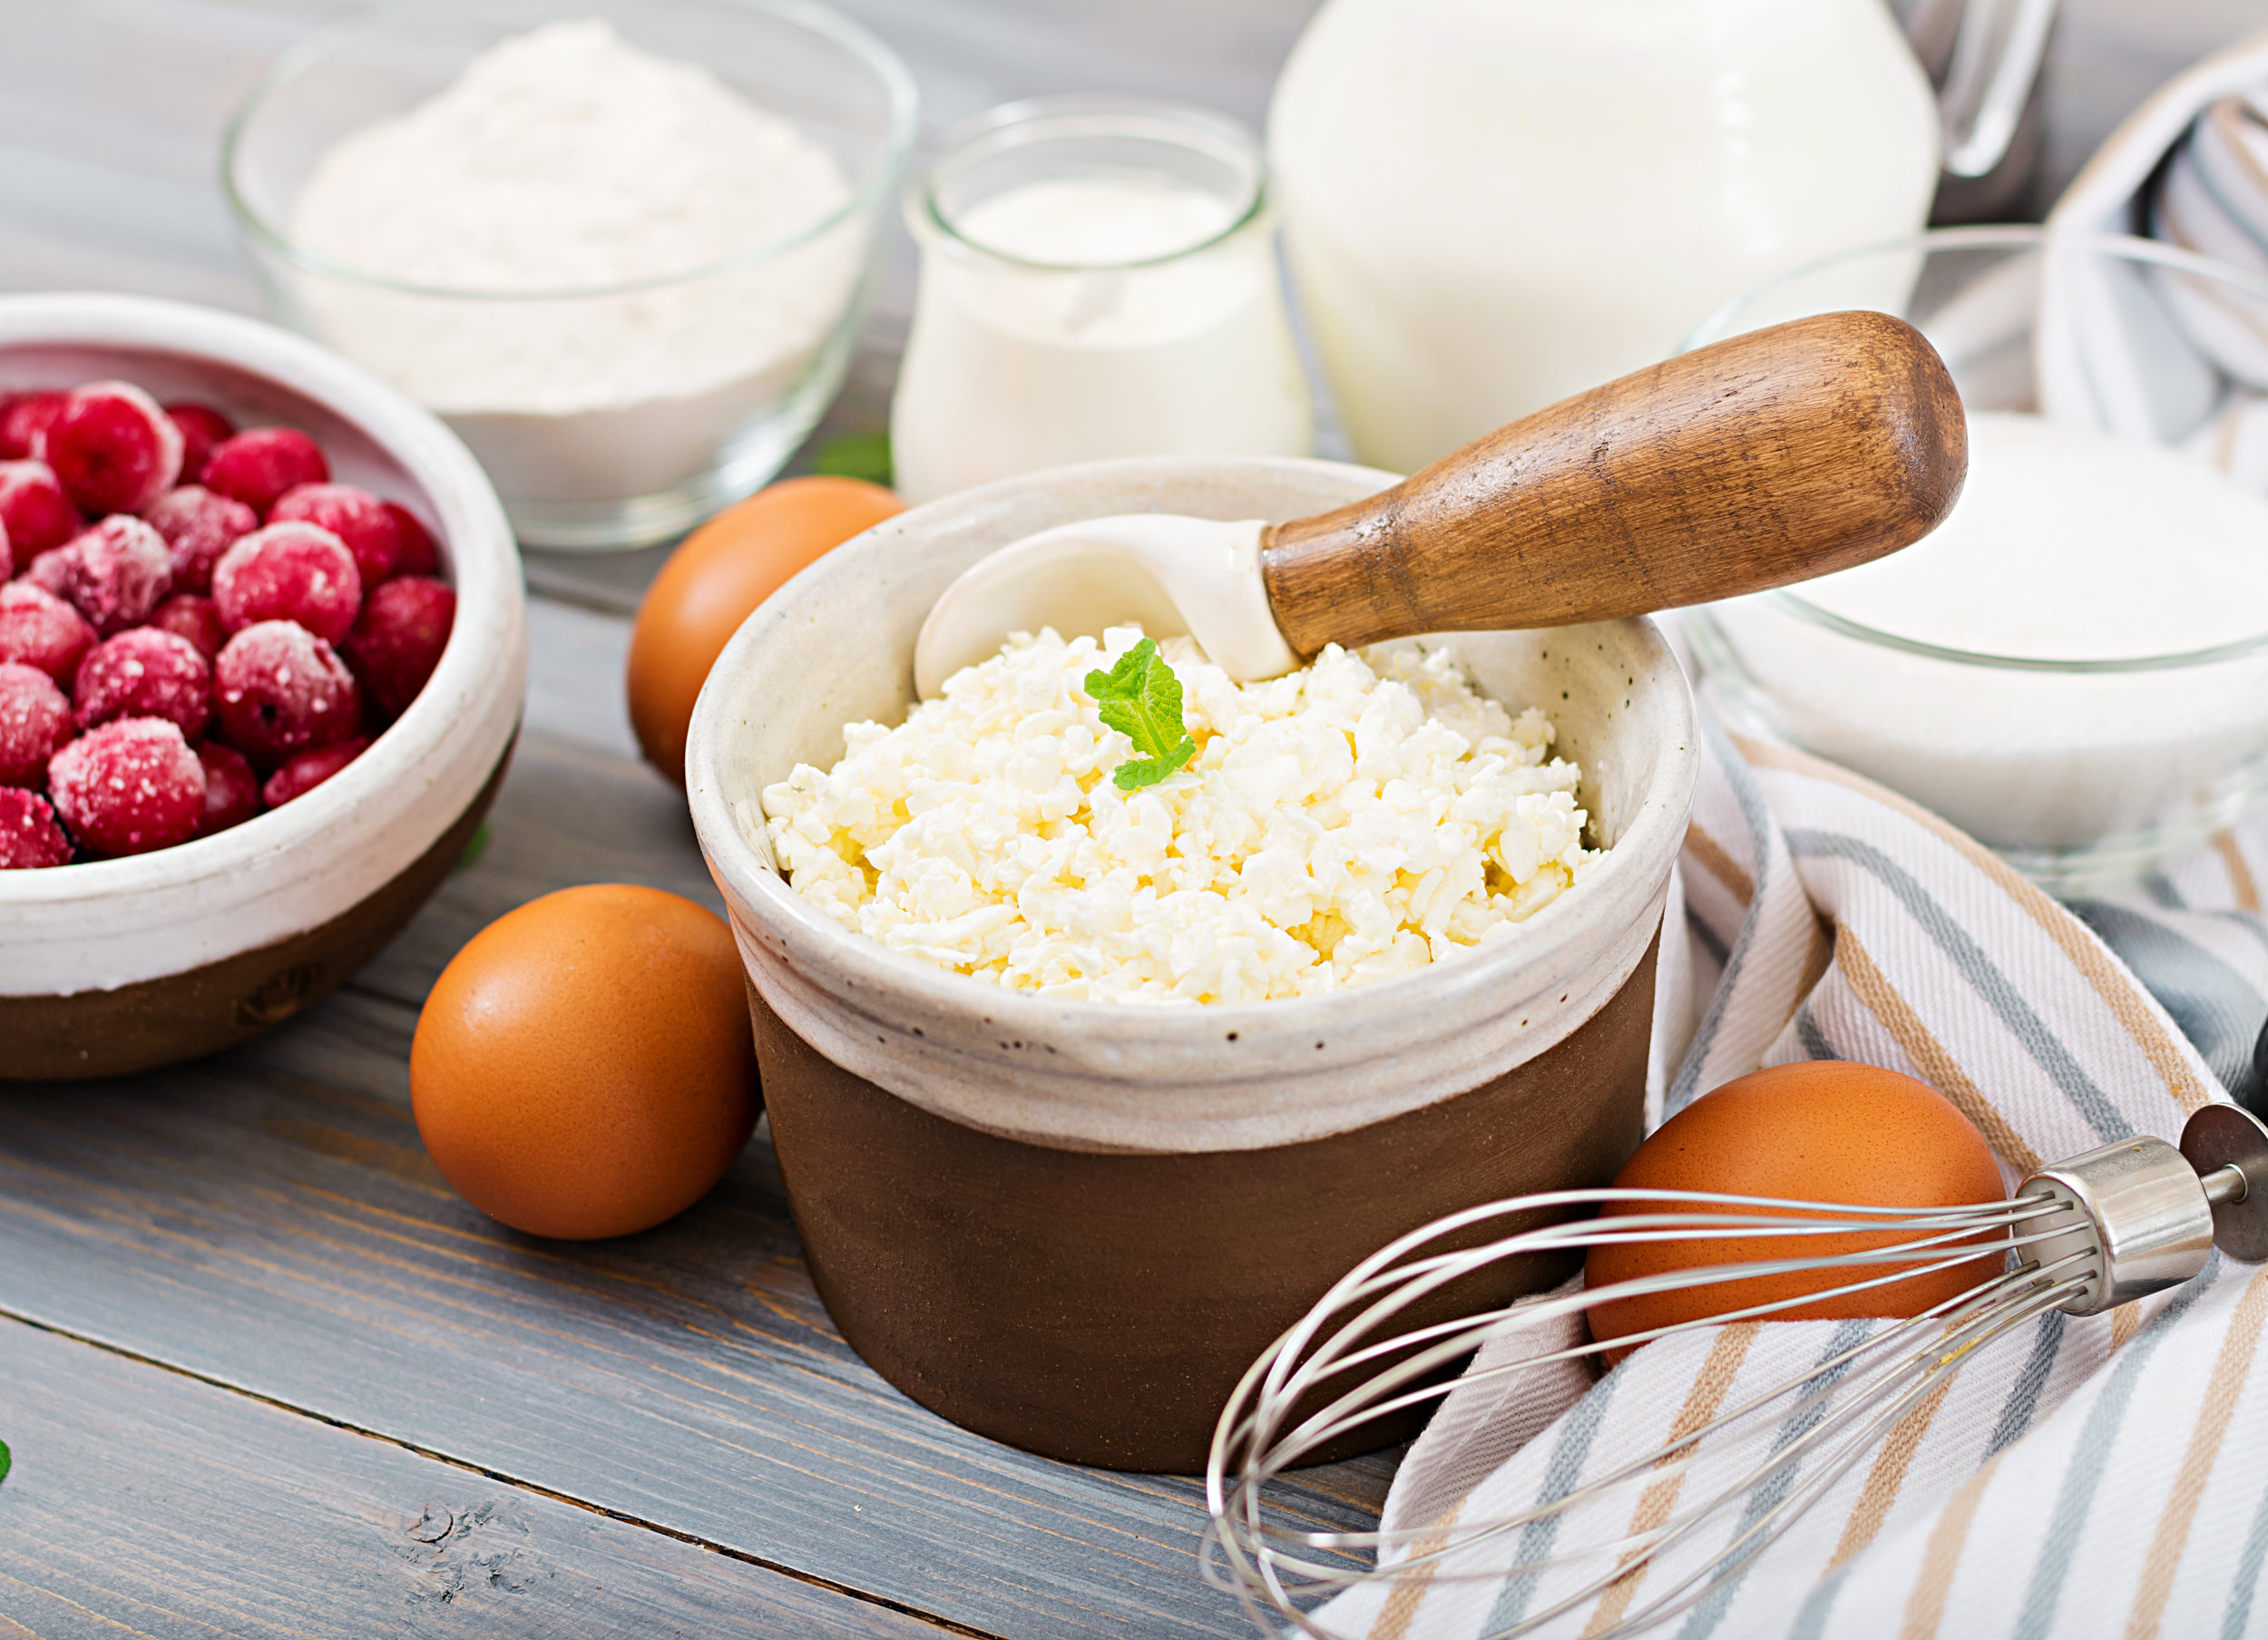 ingredients-for-the-preparation-of-cottage-cheese-PDLS7S3.jpg